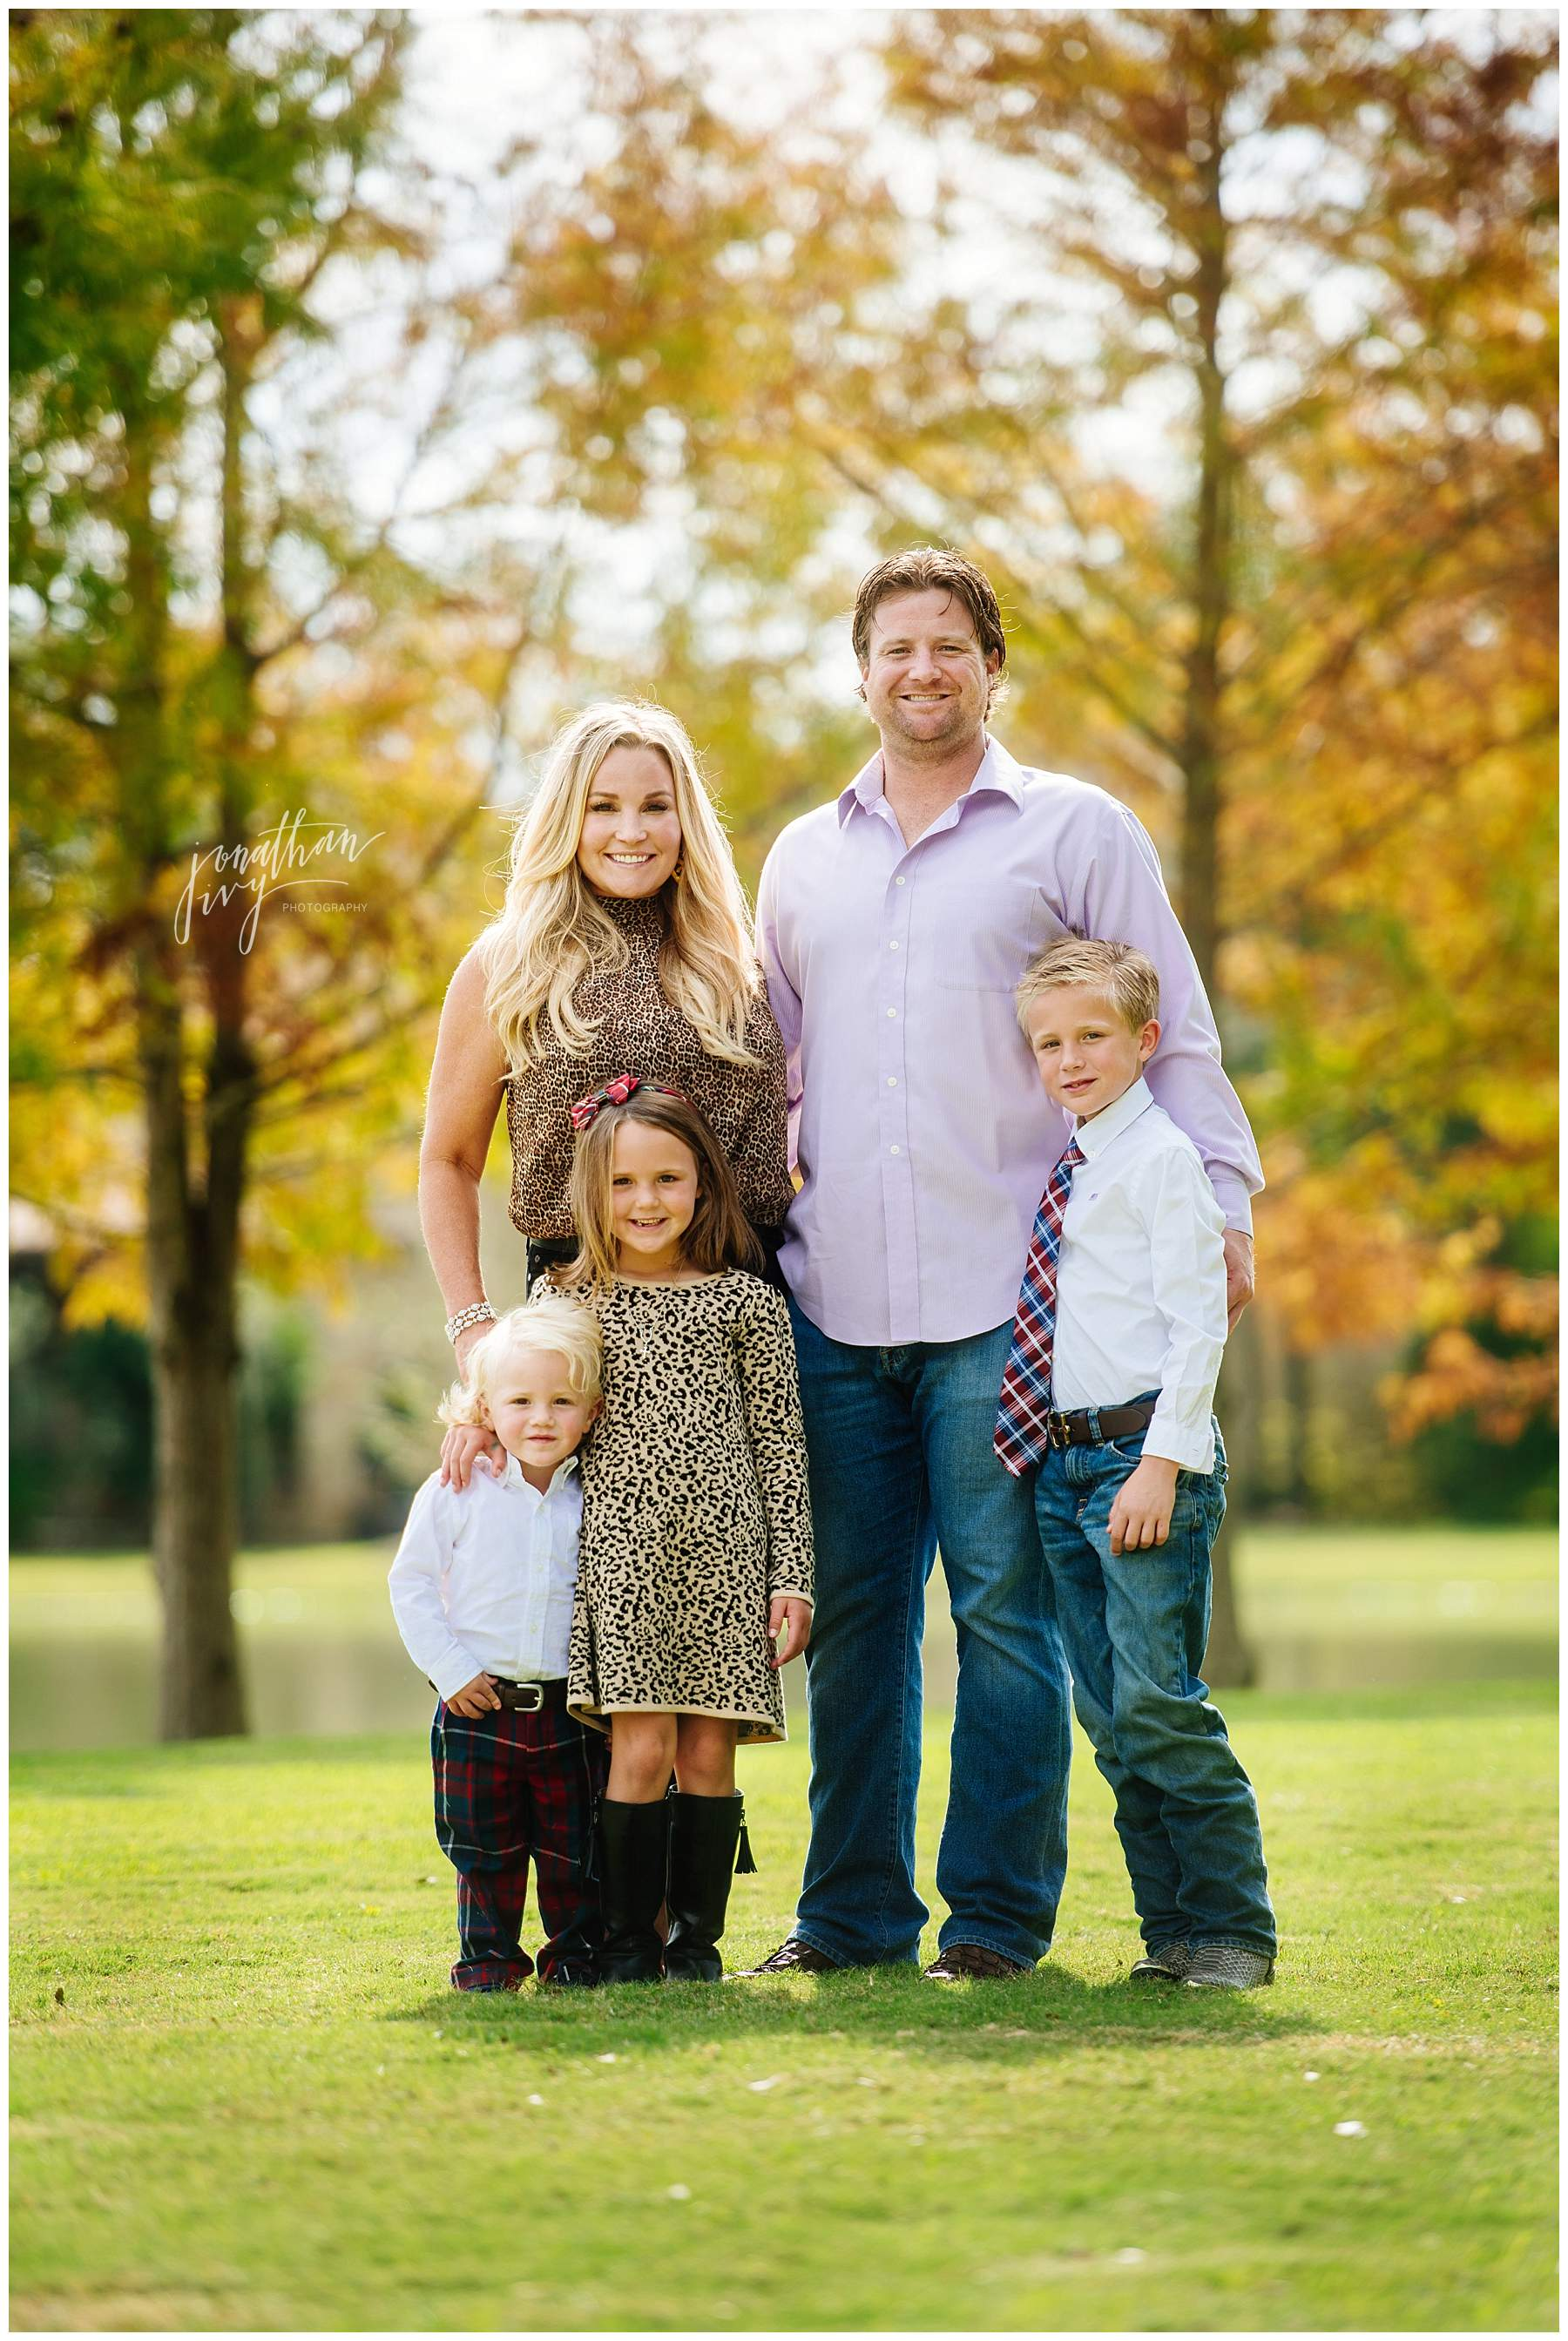 Outdoor Fall Family Photos